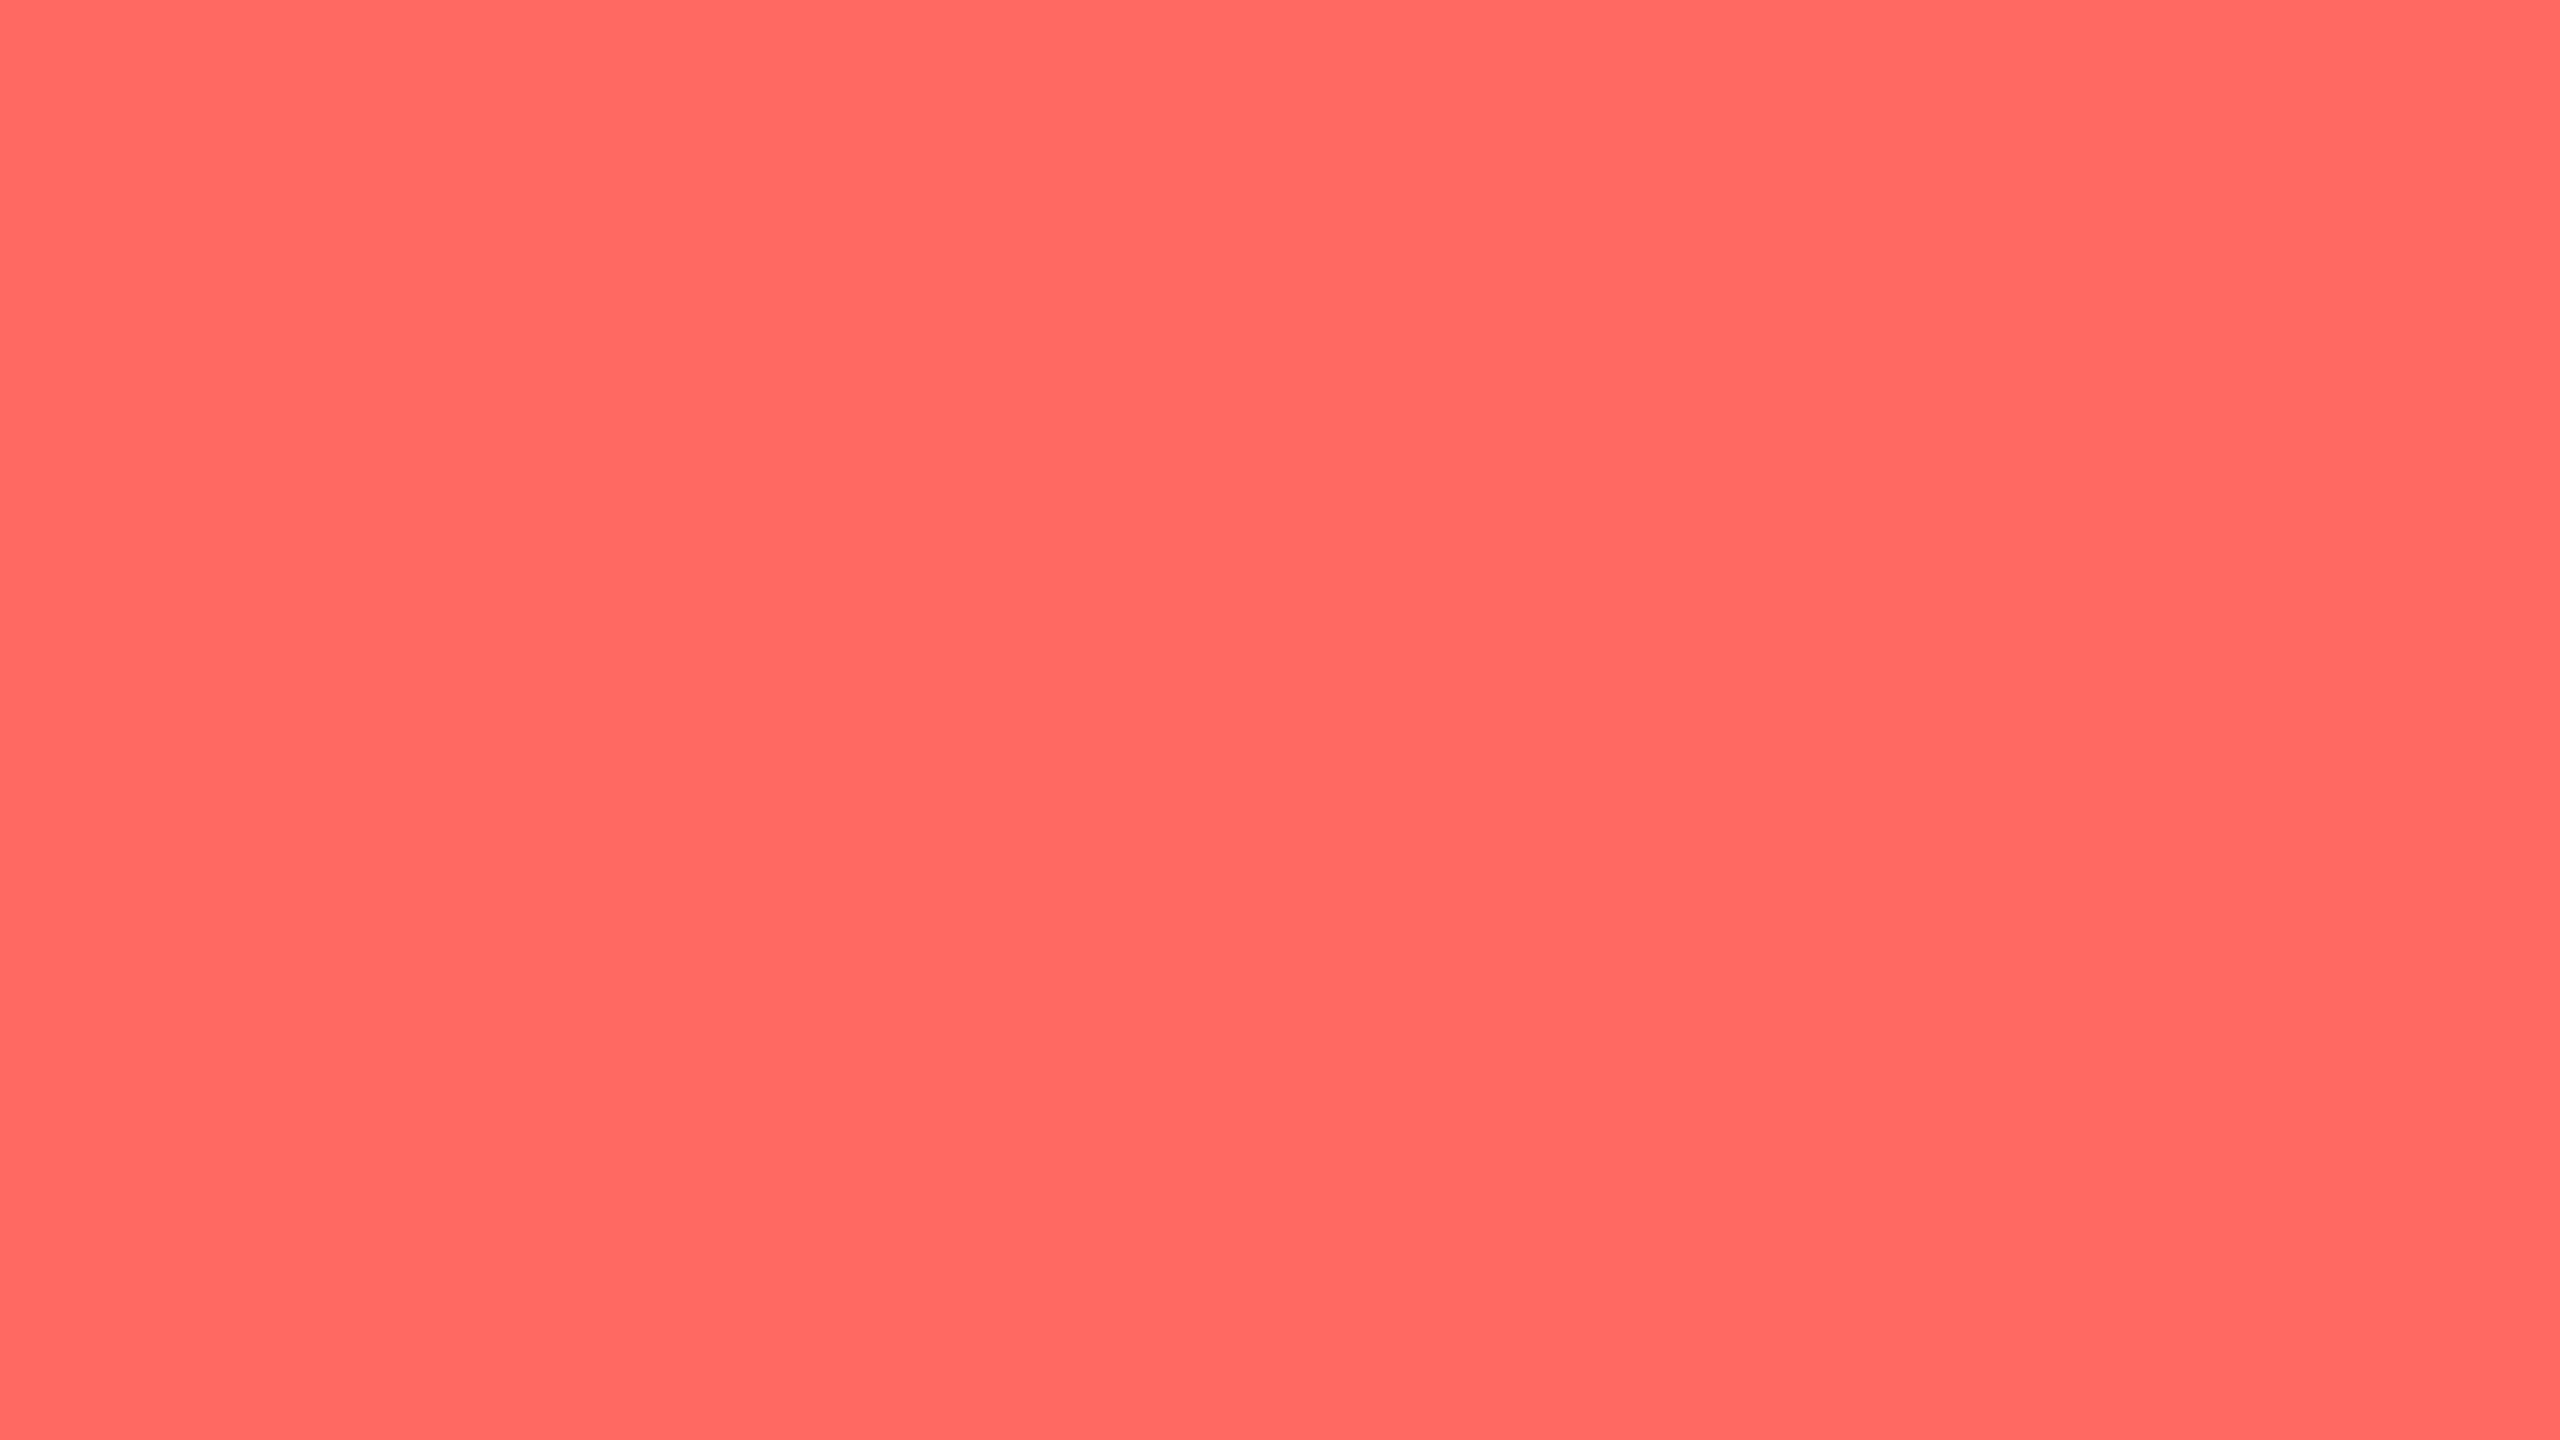 Wallpaper Red 2560x1440 >> Pastel Red Images - Reverse Search